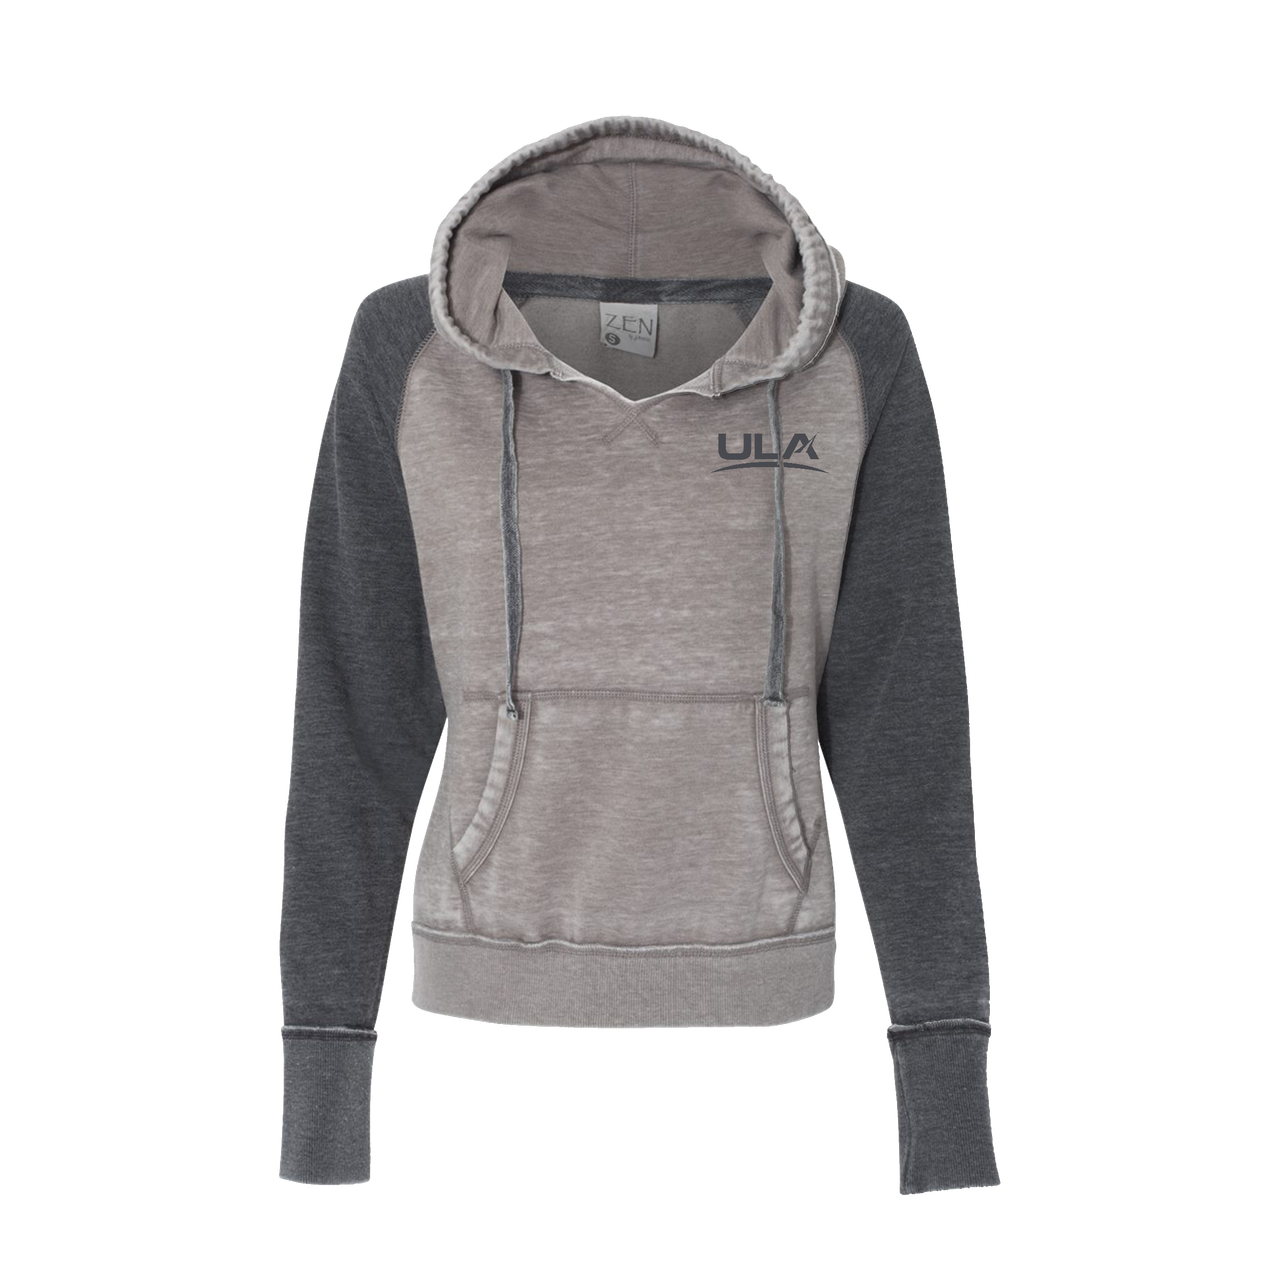 d8c45882b J. America - Women's Zen Fleece Raglan Hooded Pullover Sweatshirt